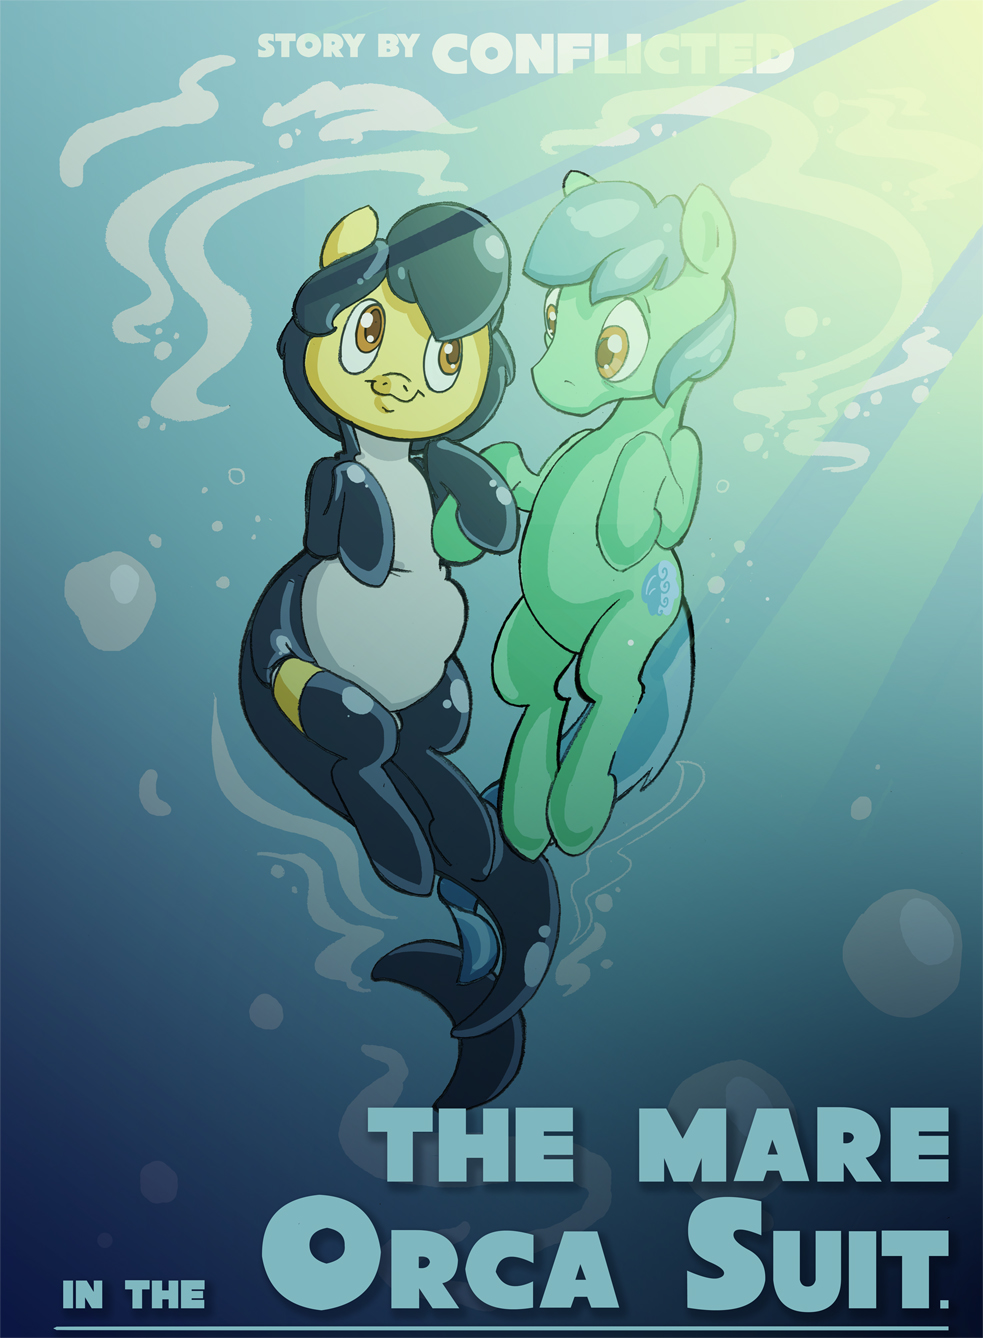 Most recent image: The Mare in the Orca Suit